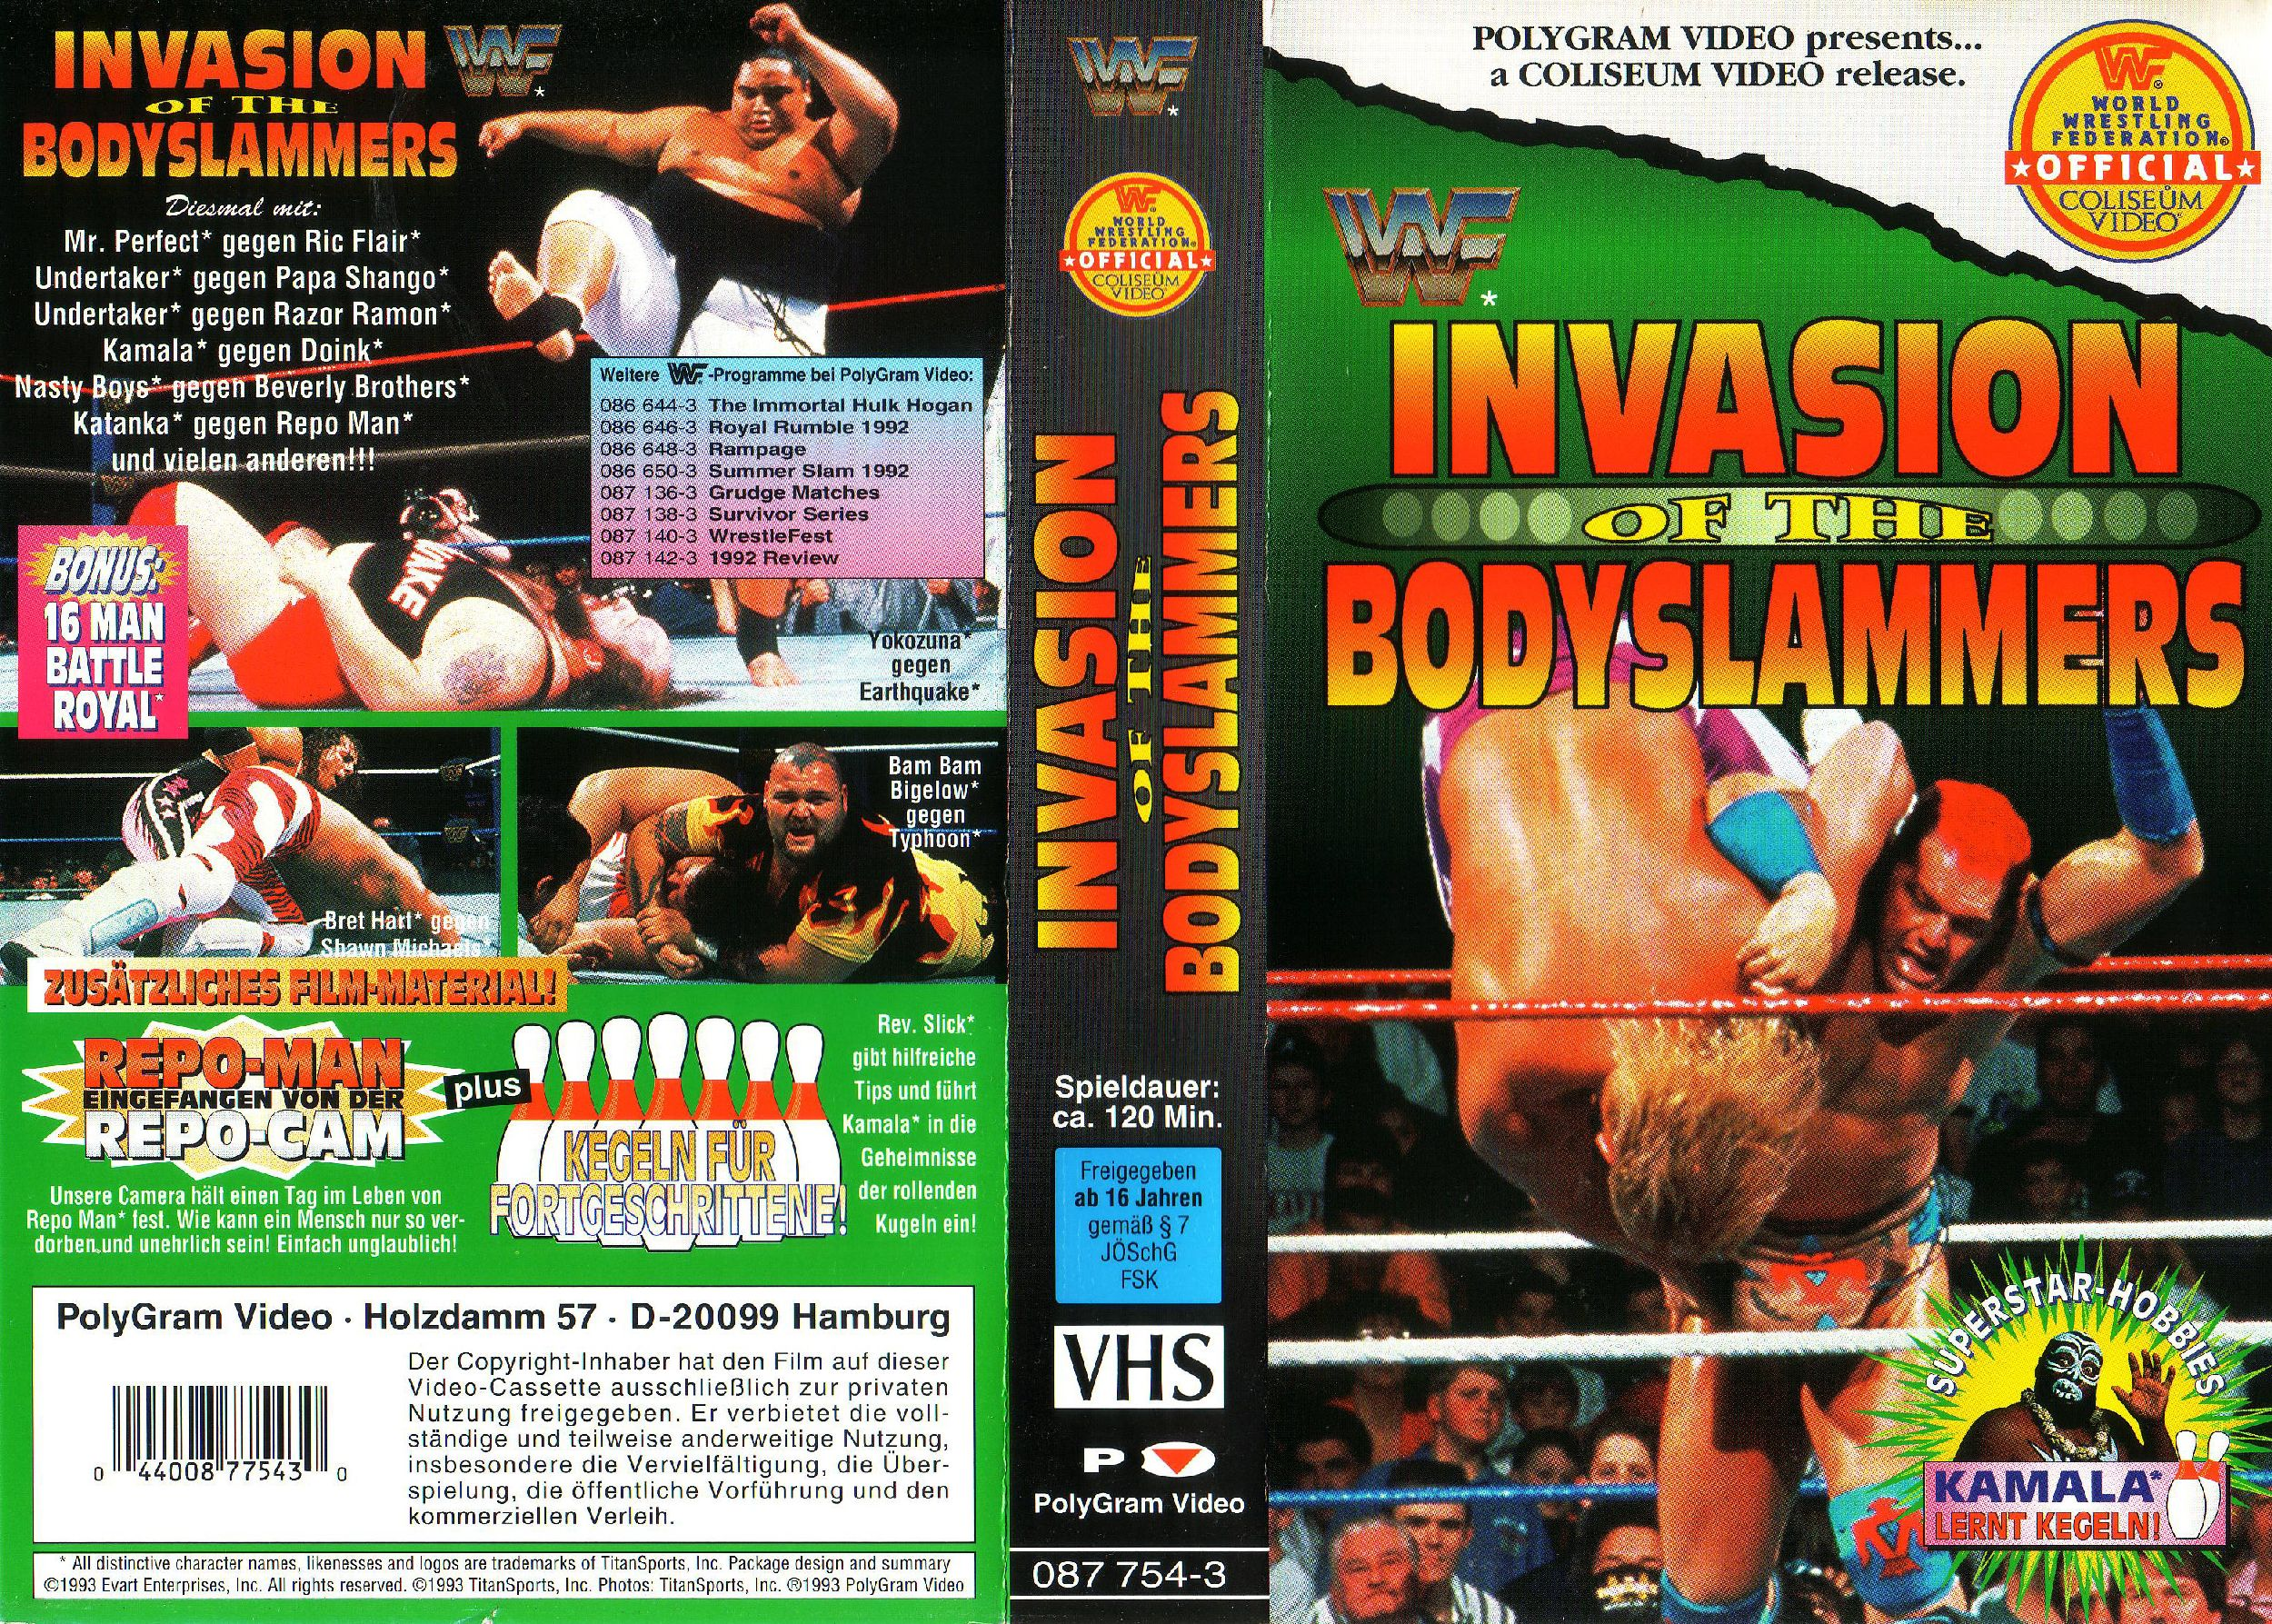 WWF_Invasion_Of_The_Bodyslammers_-_Cover_(2-2)